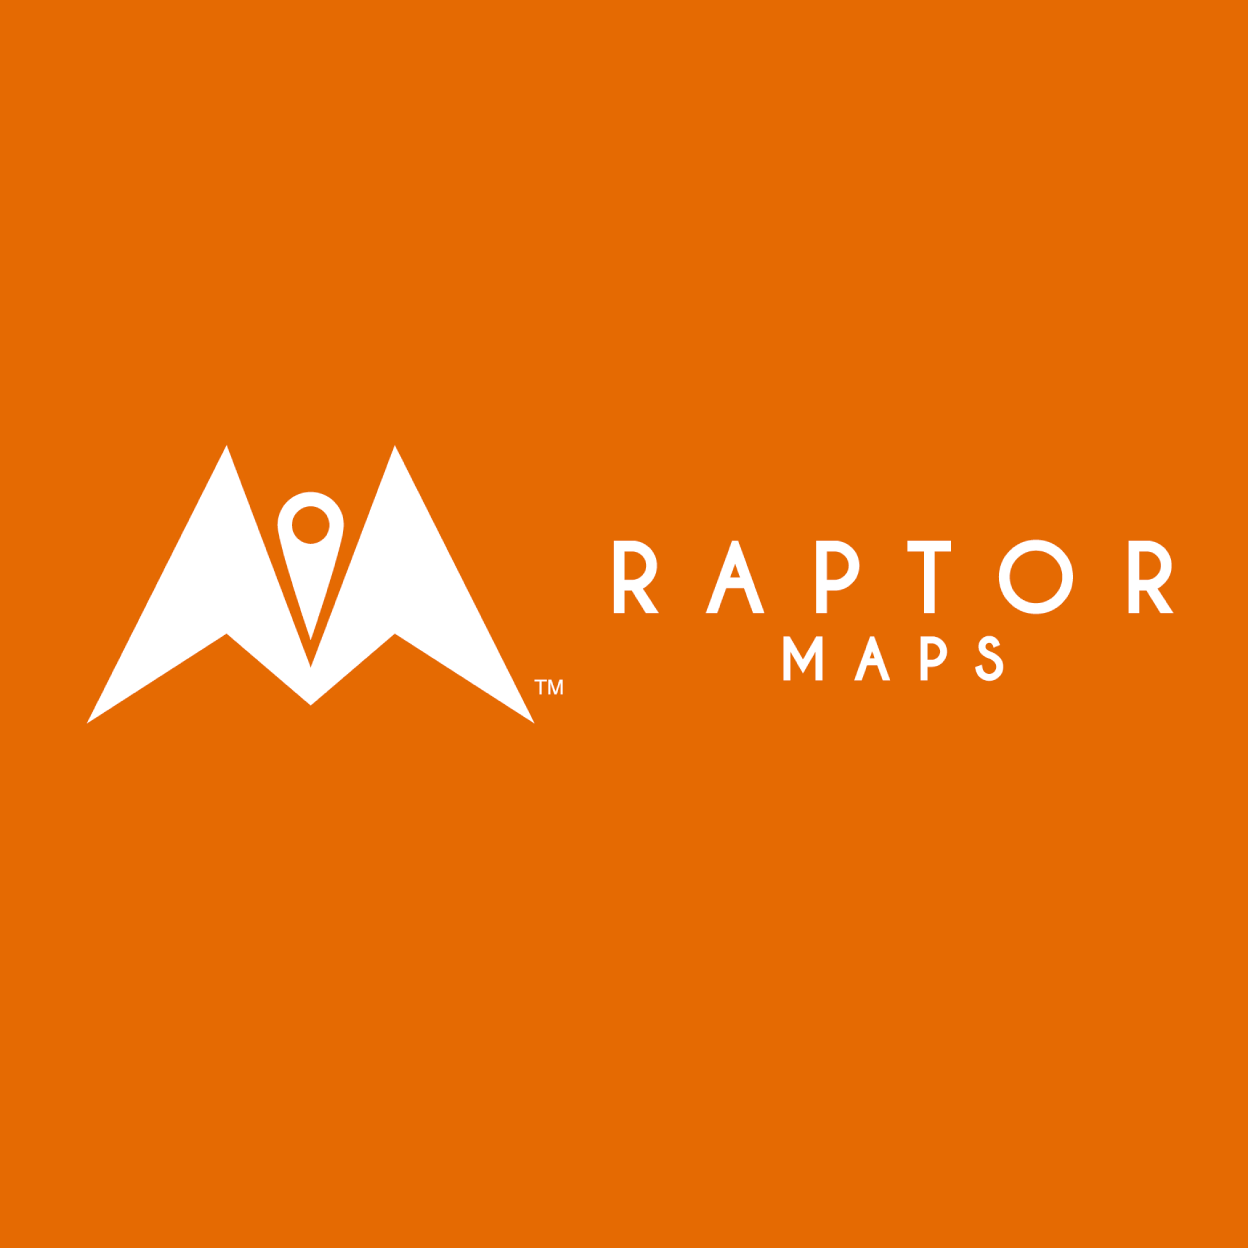 Raptor Maps, a YC company backed by Airware's Commercial Drone Fund, combines drones with the latest sensory technology and data science methodology to provide high yield crop analytics.